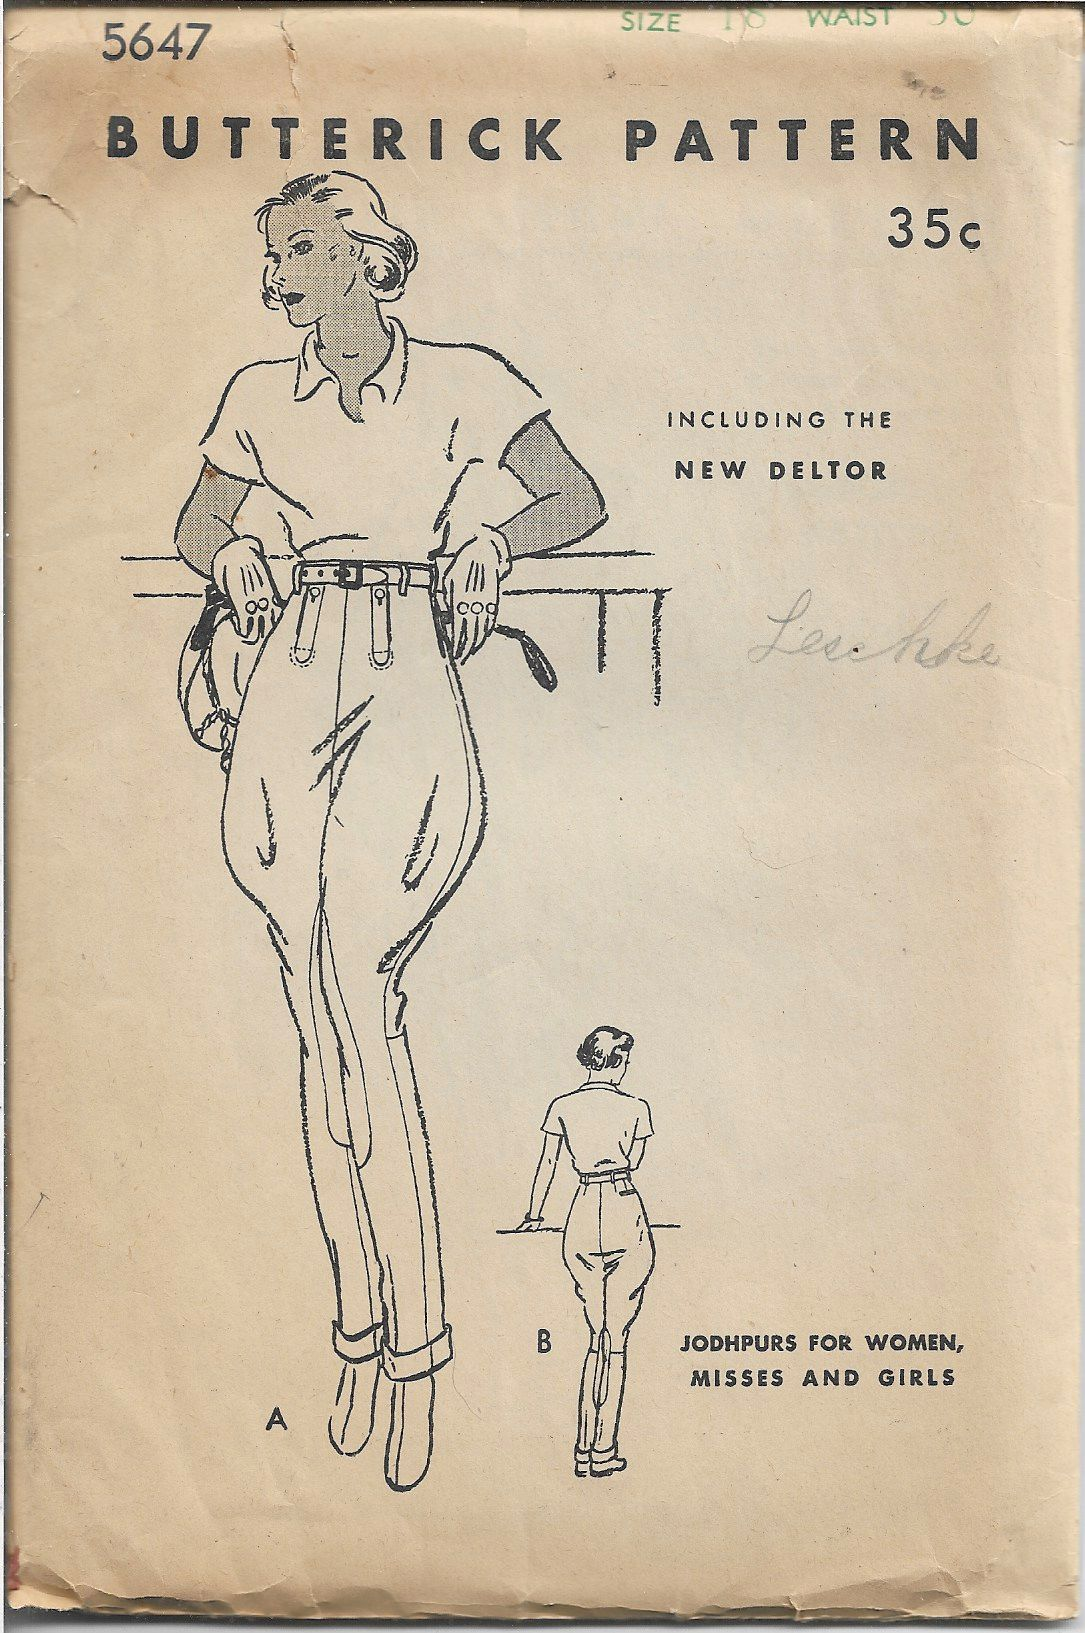 Butterick 5647 Ladies Jodhpurs Riding Pants Breeches Vintage Sewing Pattern 1930s - VintageStitching - Vintage Sewing Patterns